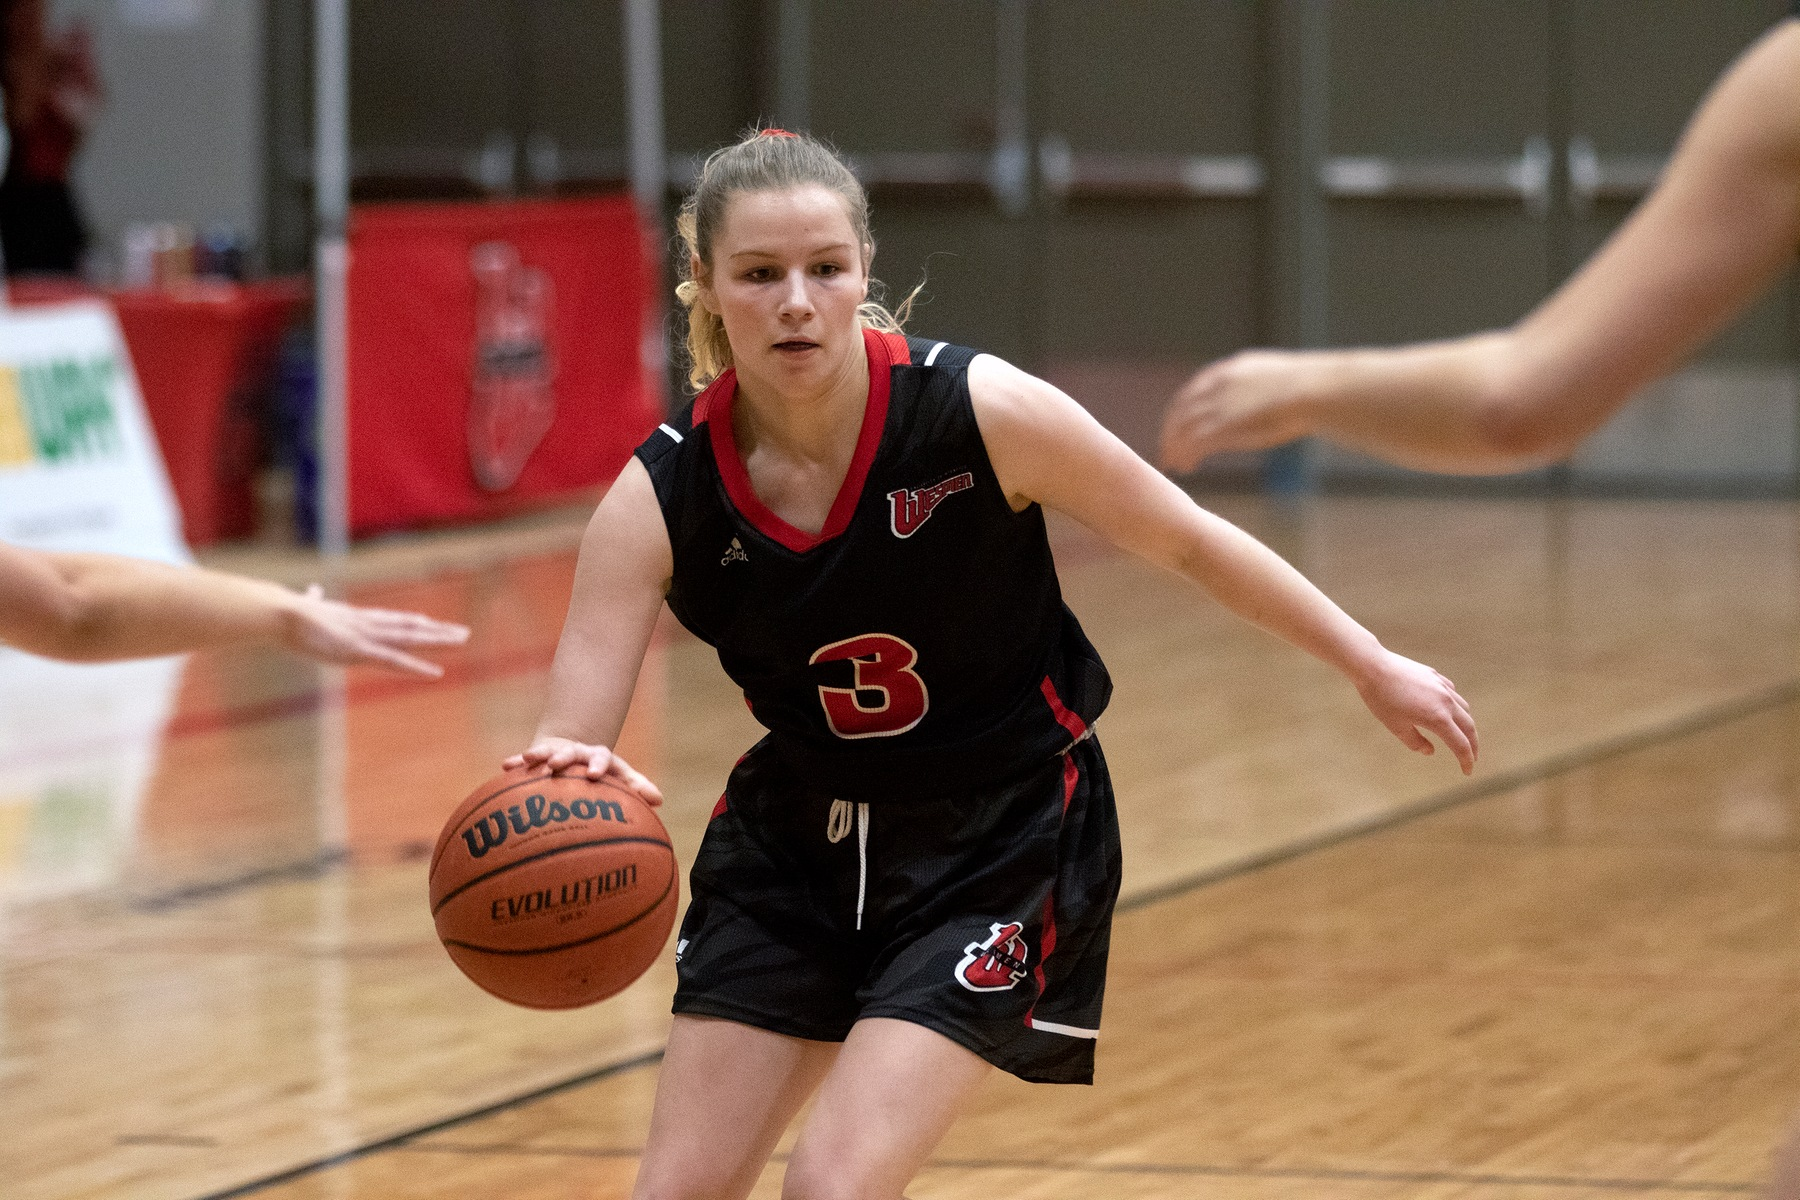 Anna Kernaghan had 21 points to lead the Wesmen women's basketball team to a win at UBC-Okanagan on Friday, Jan. 24, 2020. (David Larkins/Wesmen Athletics File)